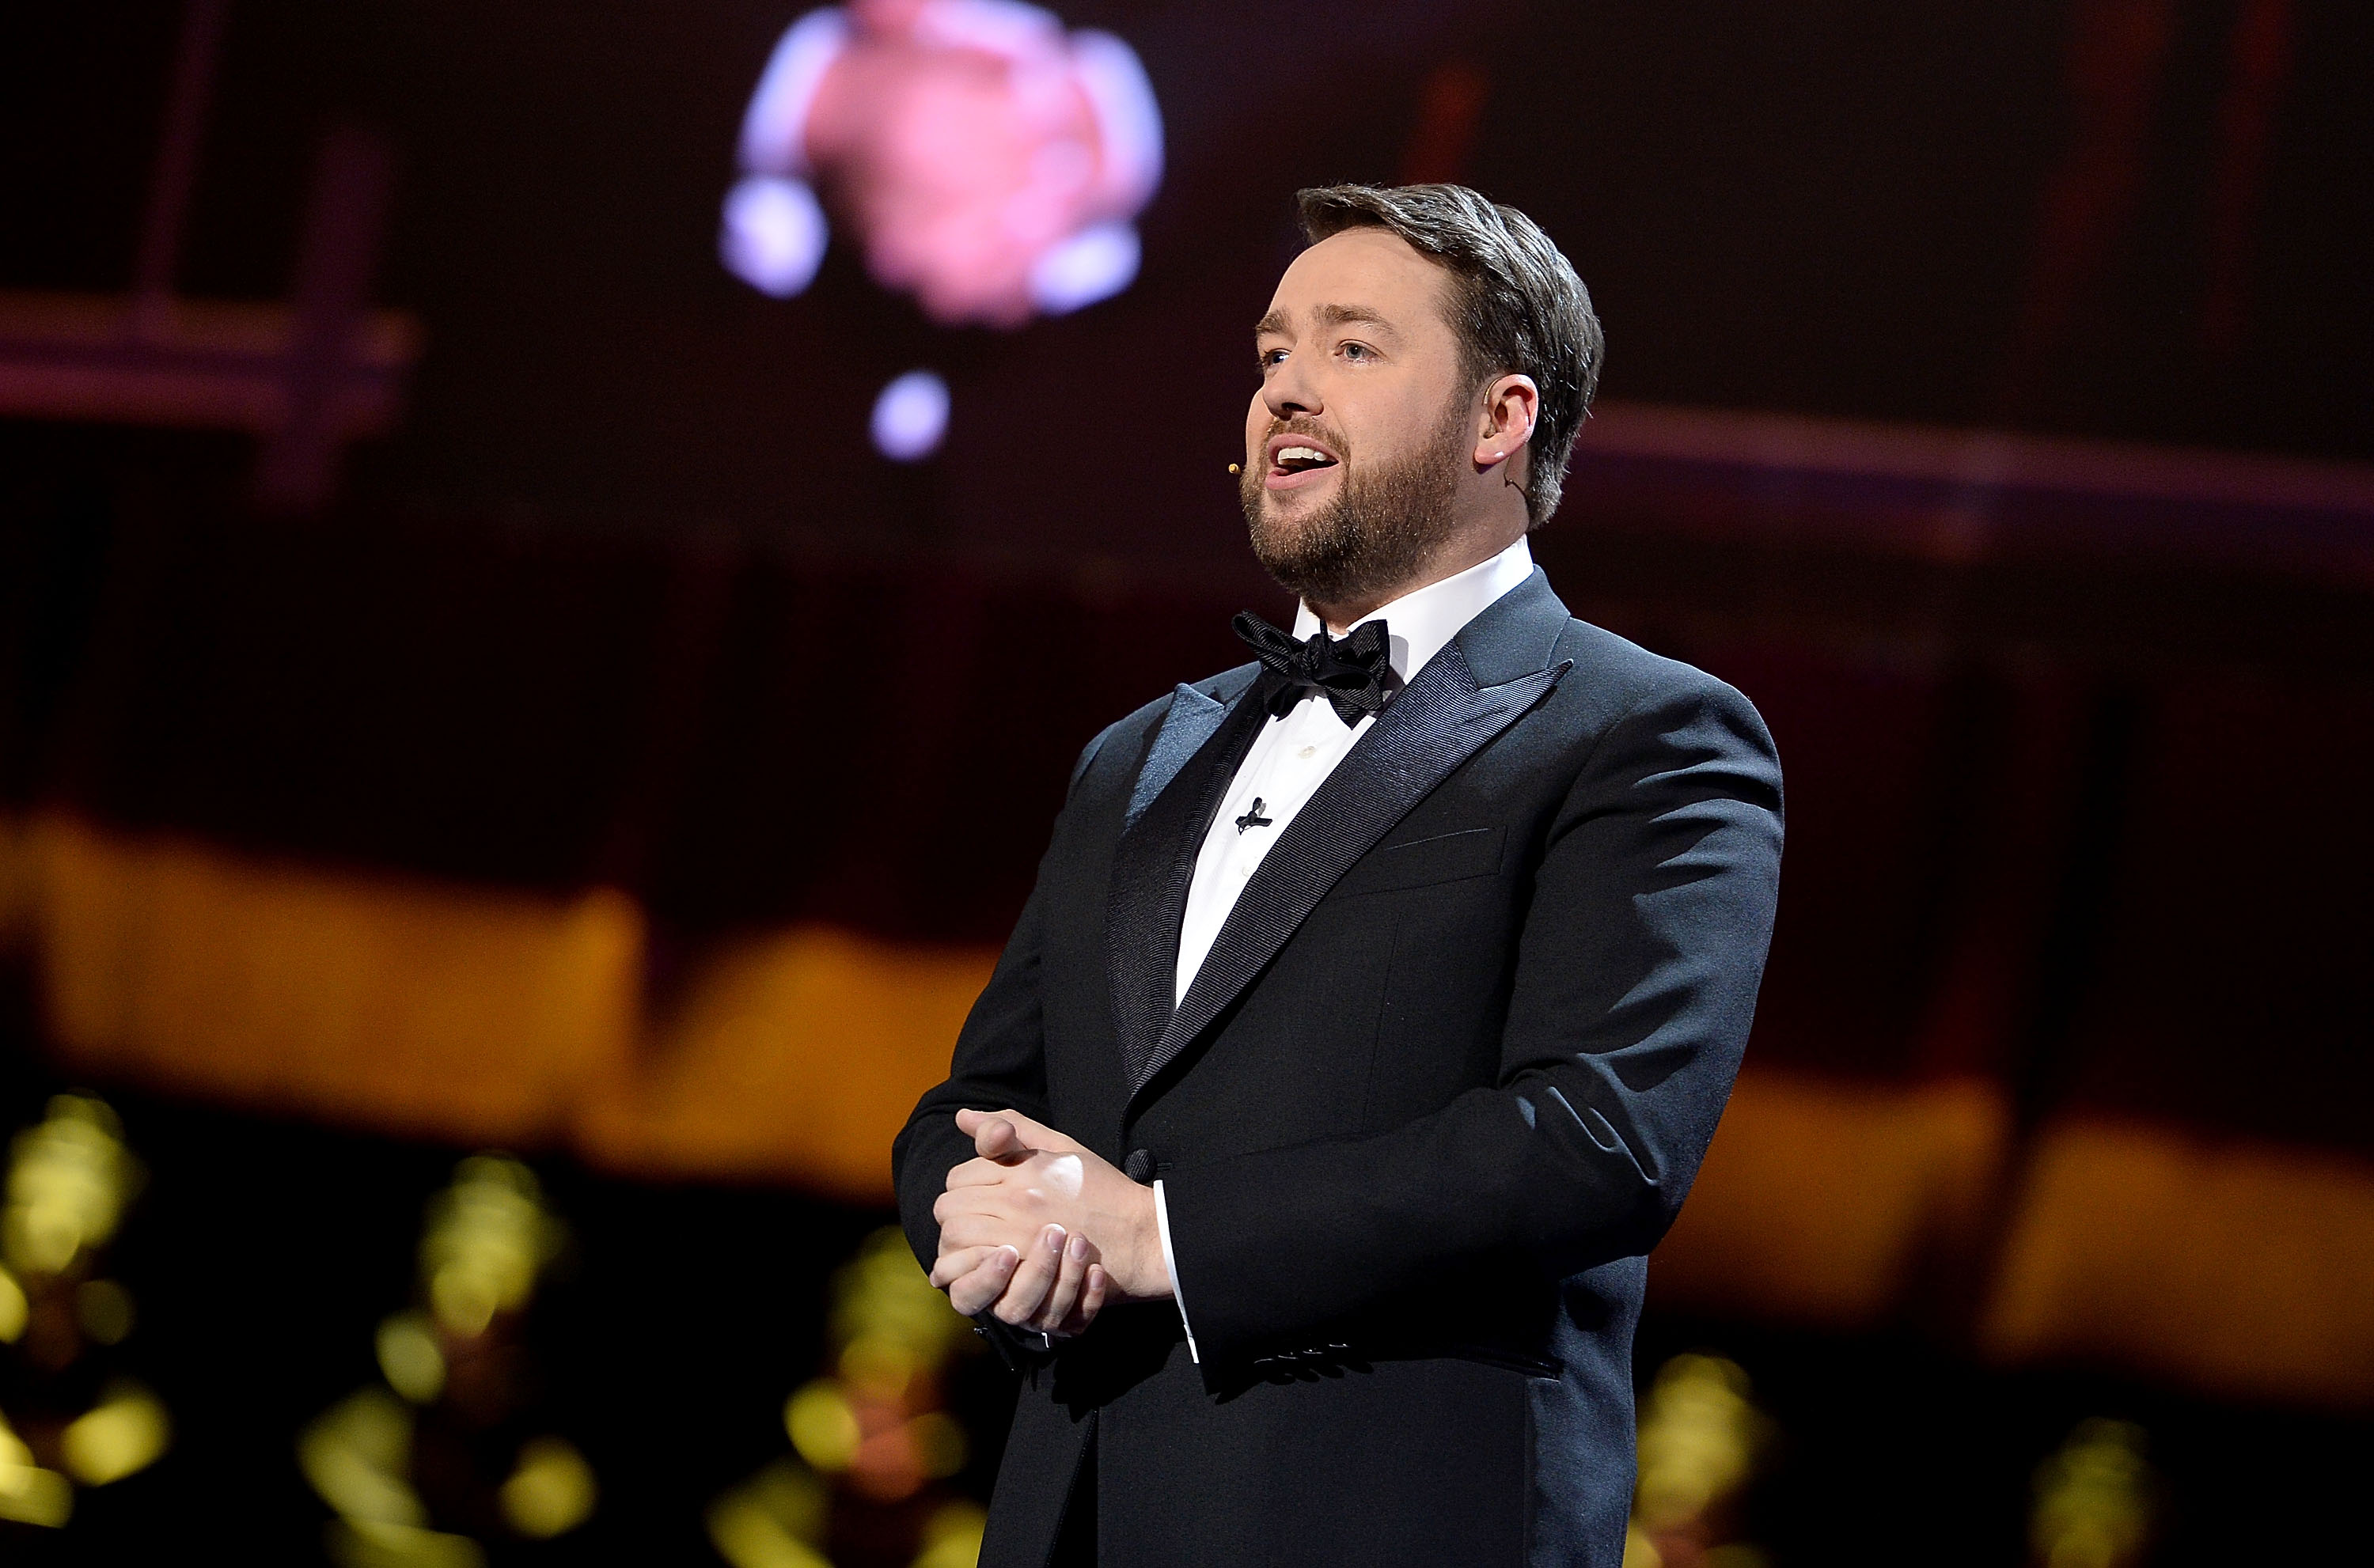 Jason Manford marks himself 'safe' after Oxford Circus incident is declared a false alarm